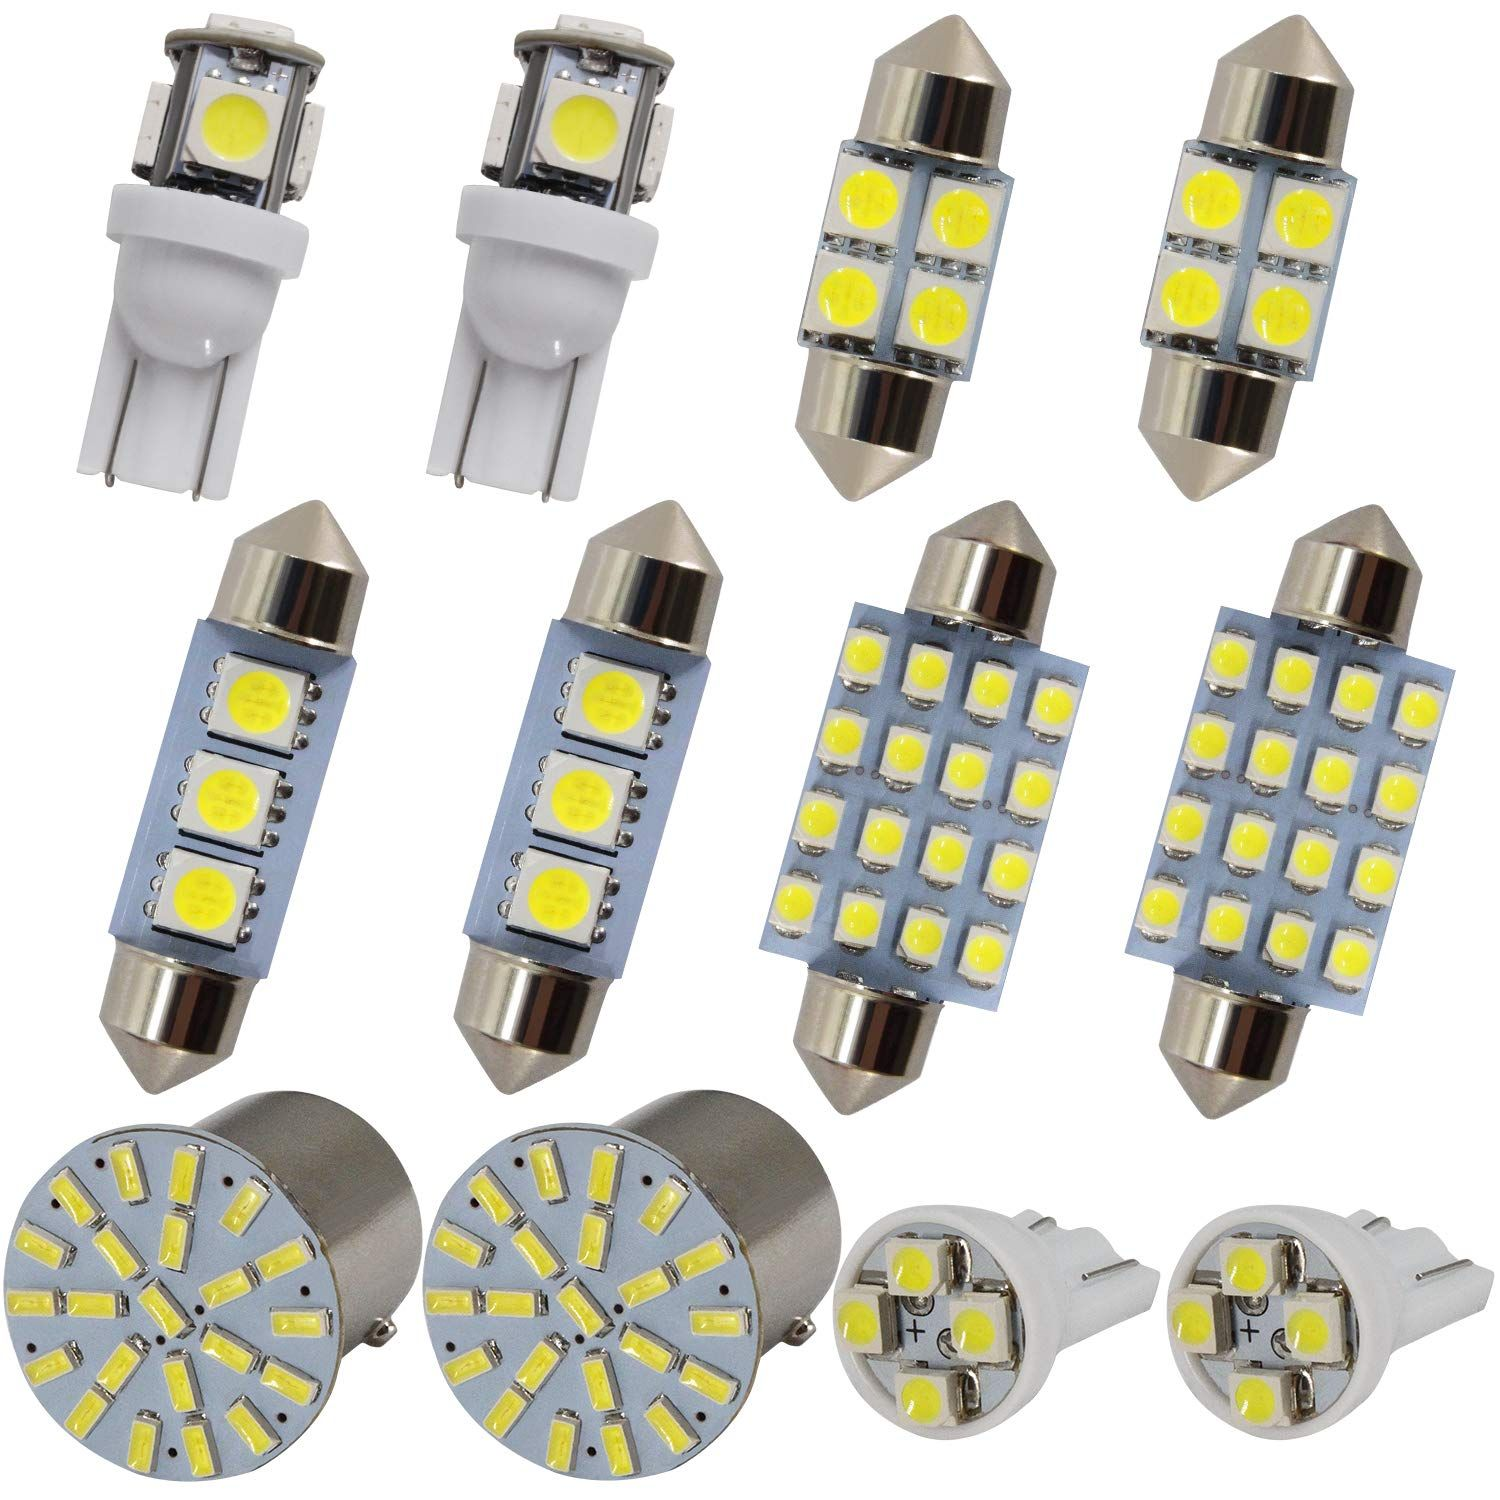 Festoon Led Bulbs T10 W5w Wedge Led Bulbs Bay15d 1157 Led Bulbs Combination 12 Pcs Usually Used For Side Light Position Lamp In 2020 Led Bulb Side Lights Car Interior